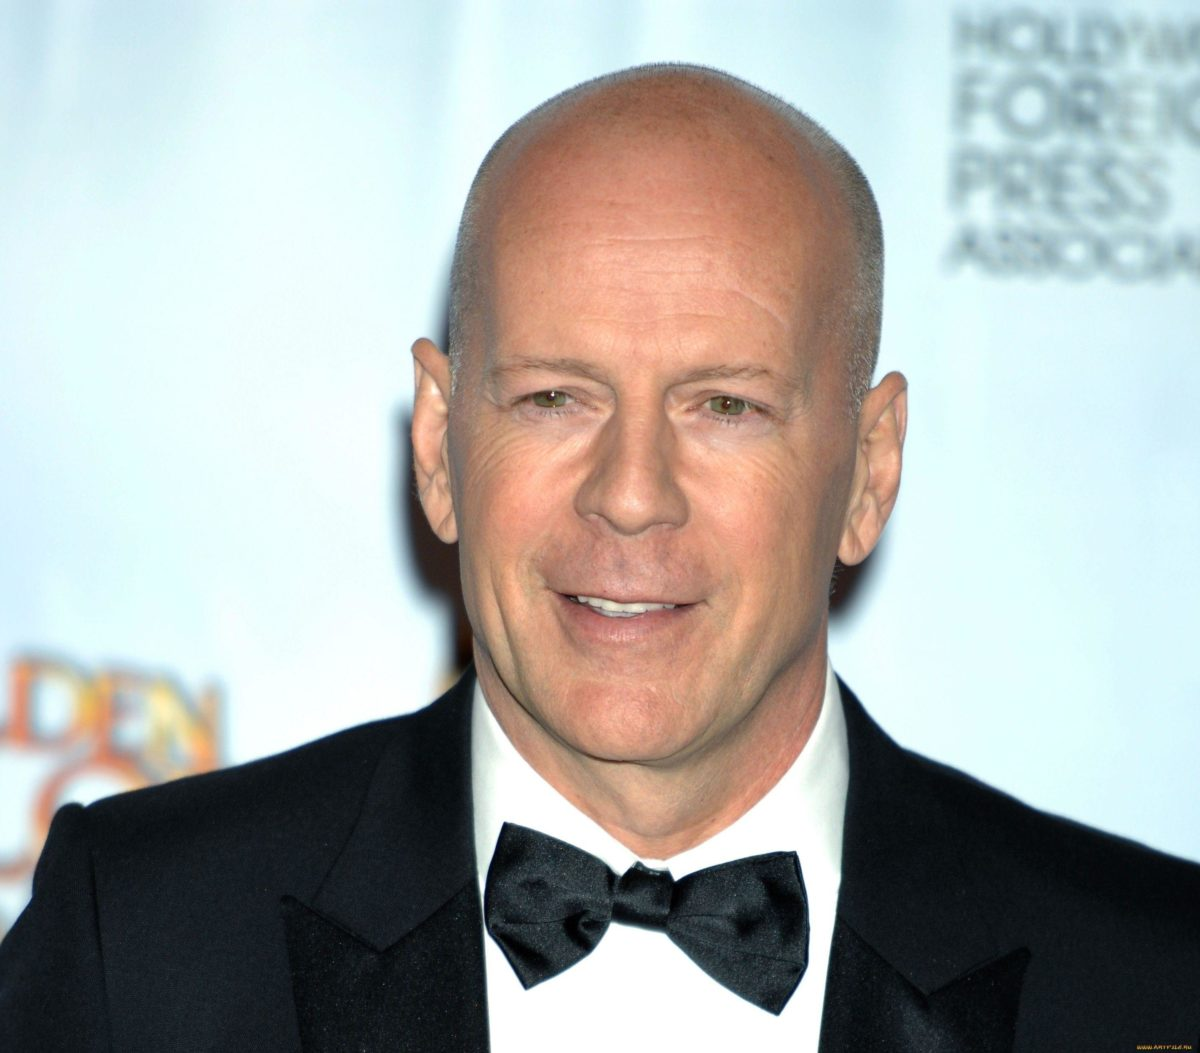 102 Bruce Willis HD Wallpapers   Backgrounds – Wallpaper Abyss